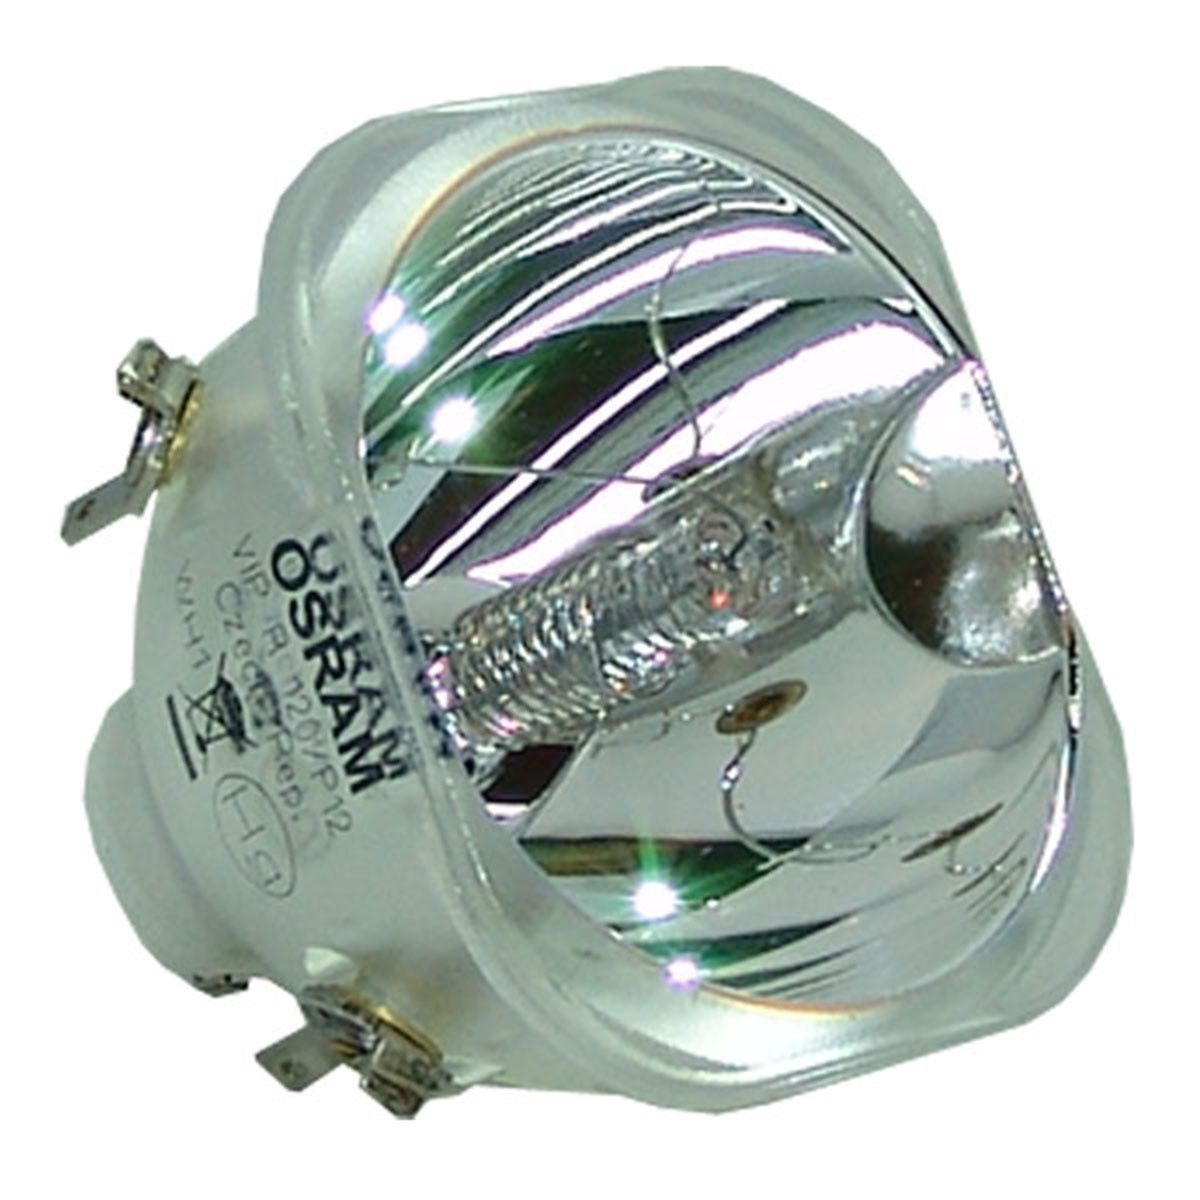 Compatible Bare Bulb EC.J0301.001 for Acer PB520 / PD520 Projector Bulb Lamp Without Housing Free Shipping free shipping ec jea00 001 compatible bare lamp for acer p1223 180day warranty